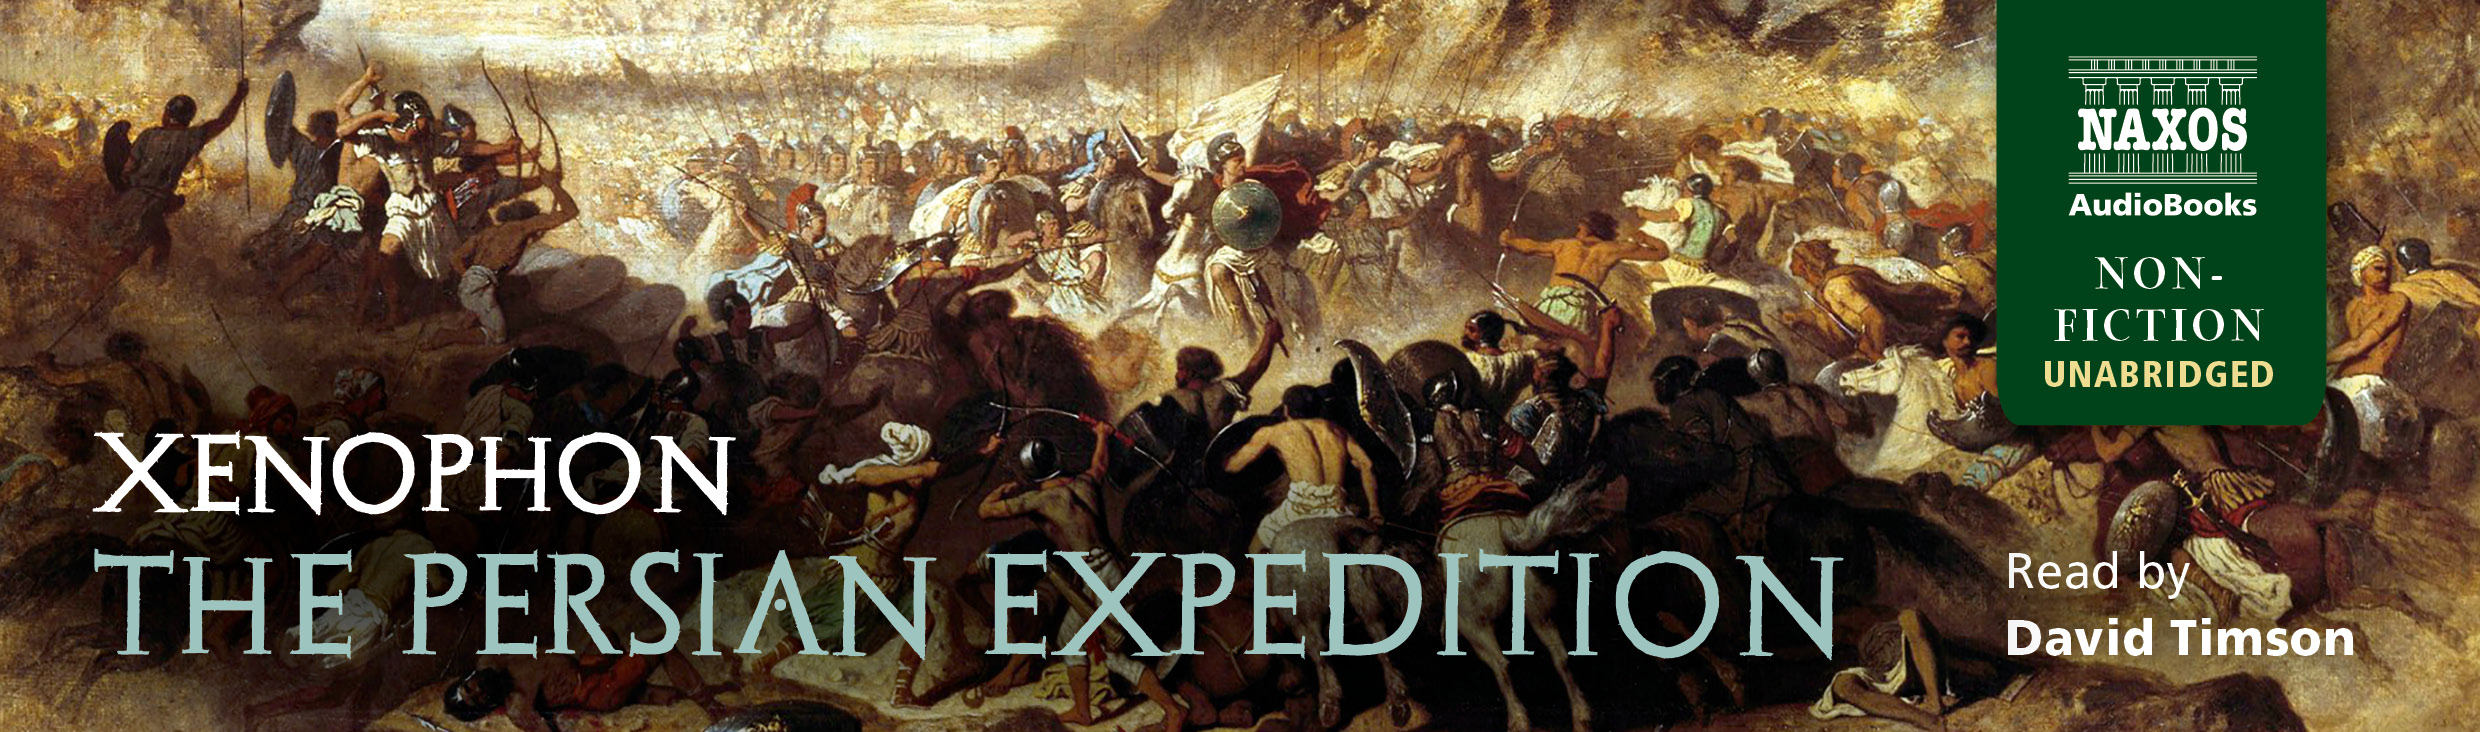 The Persian Expedition (unabridged)